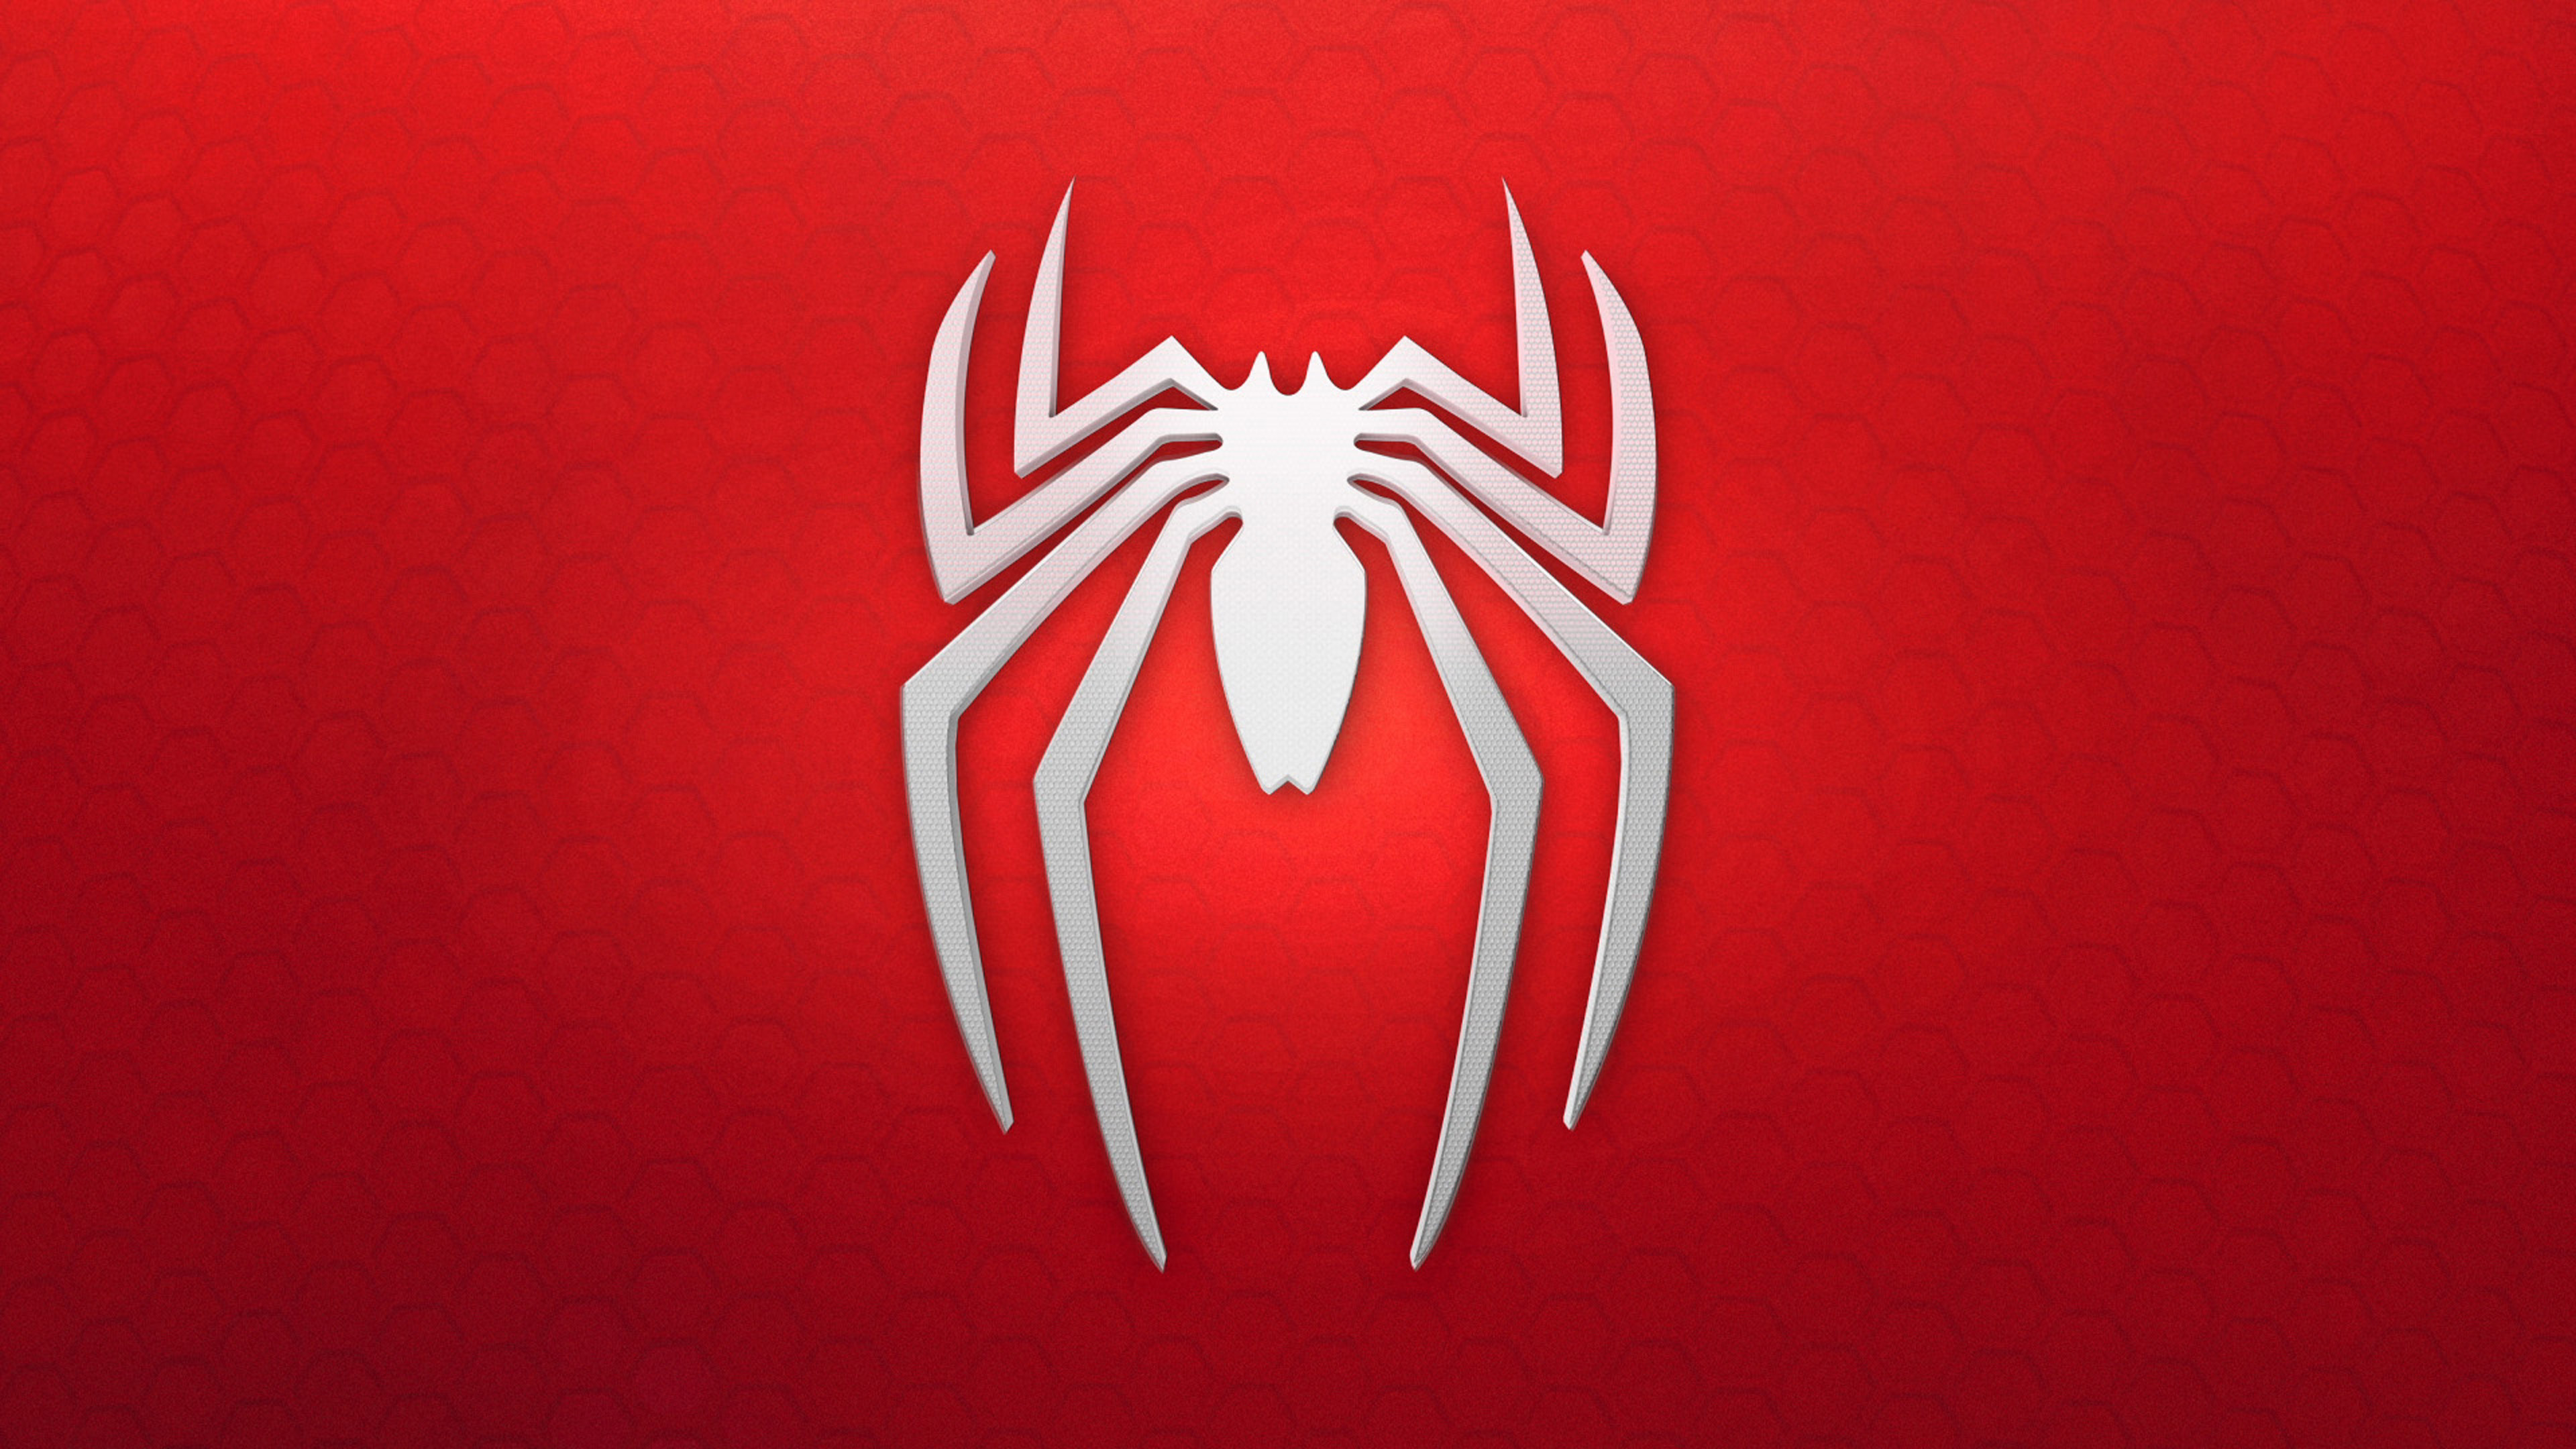 2048x1152 spiderman 4k logo background 2048x1152